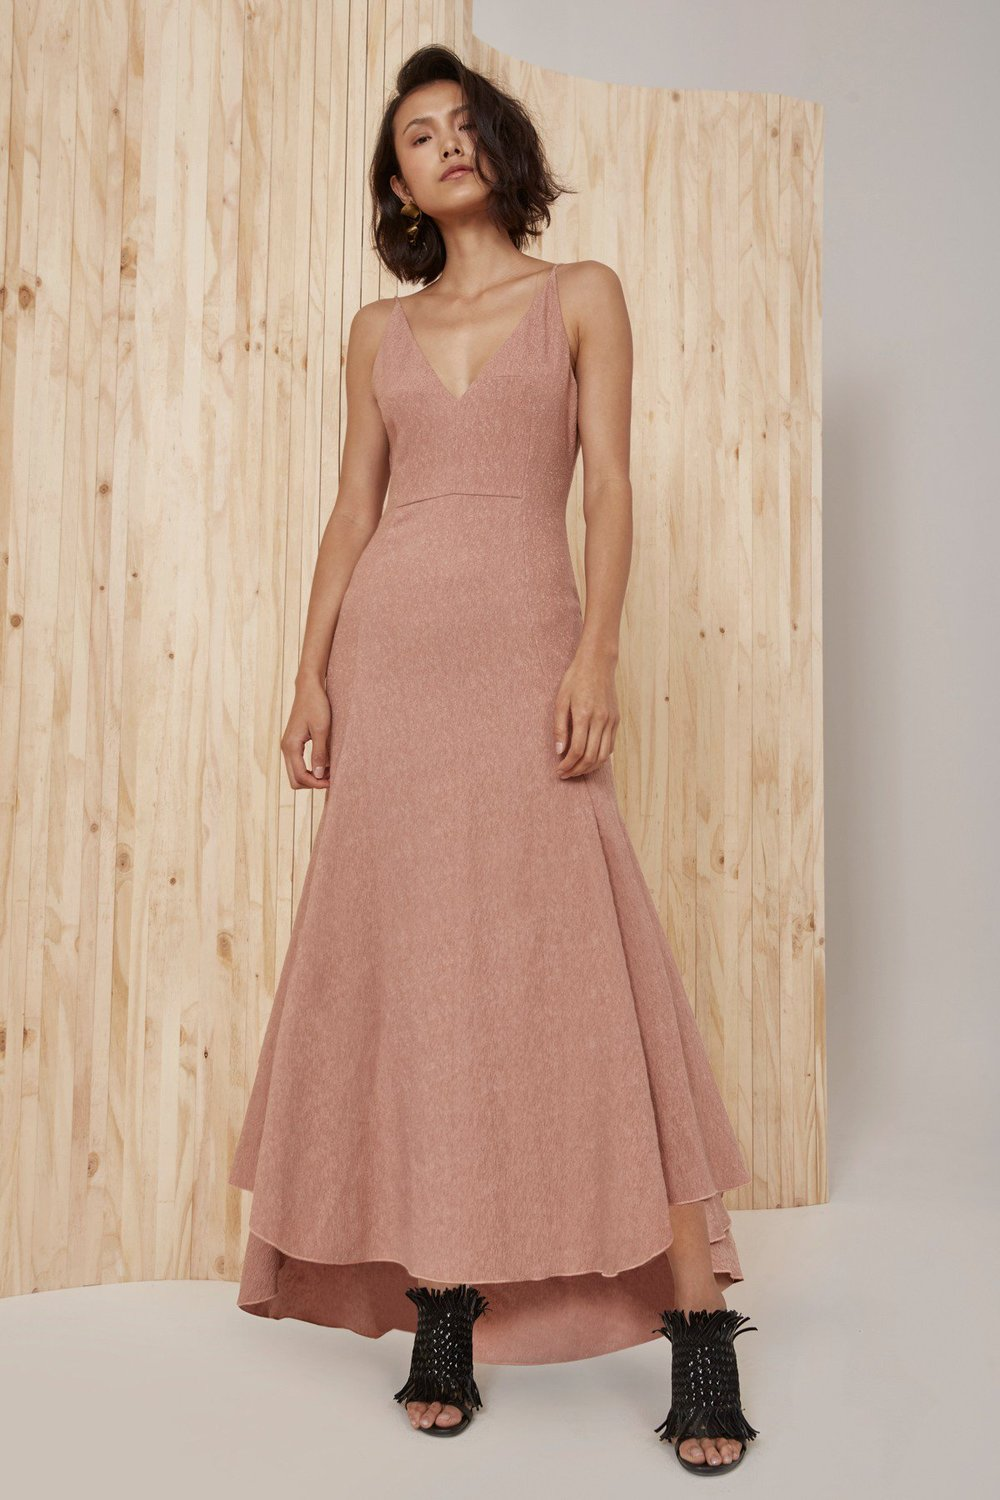 Shop C/MEO I Dream It Full Length Dress.